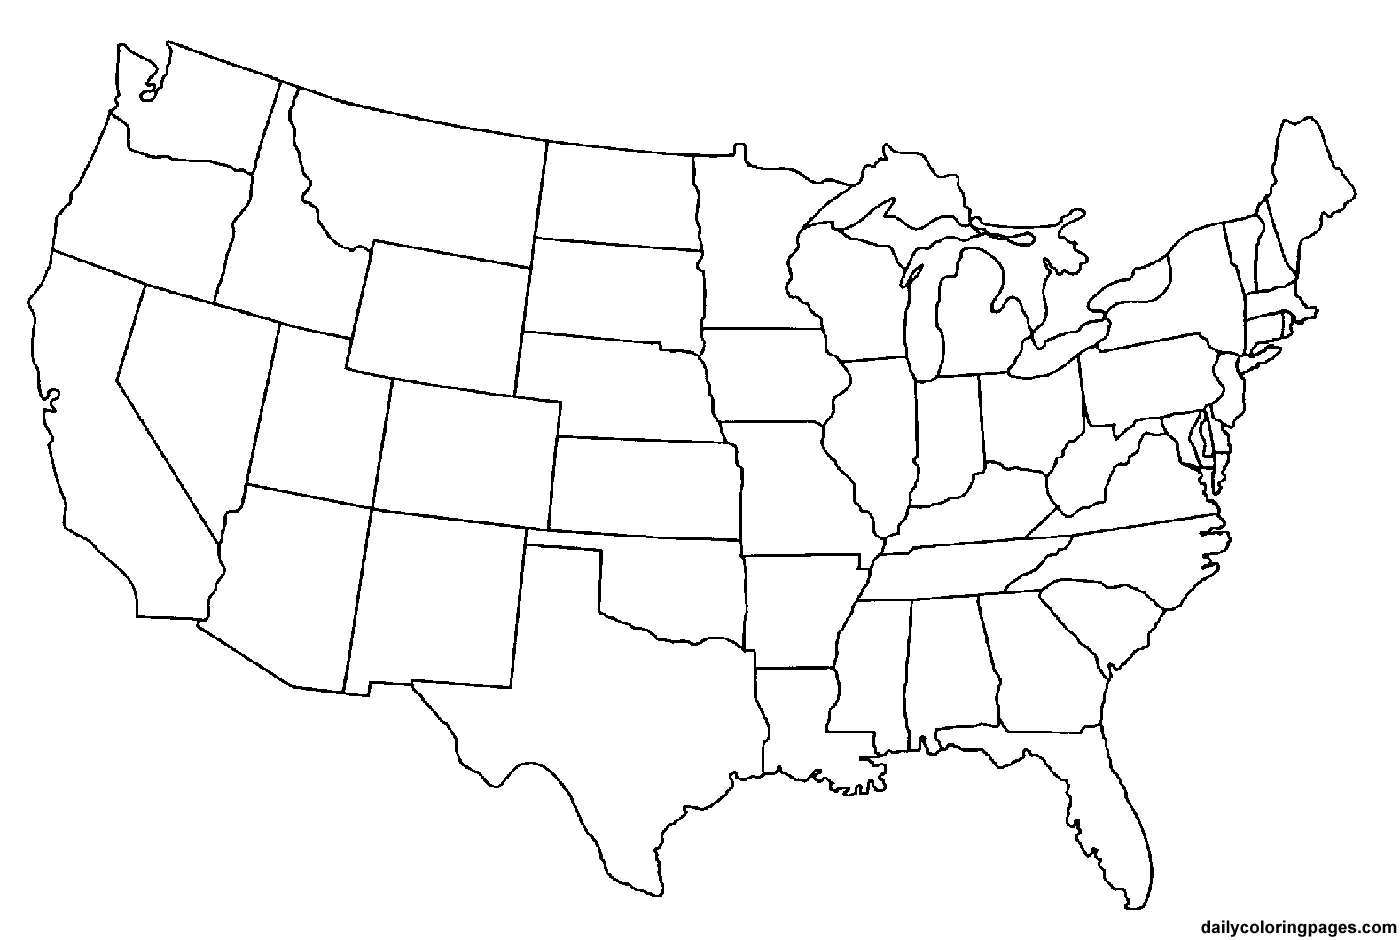 state map coloring pages Weather Maps Coloring Pages Google Search United States Map